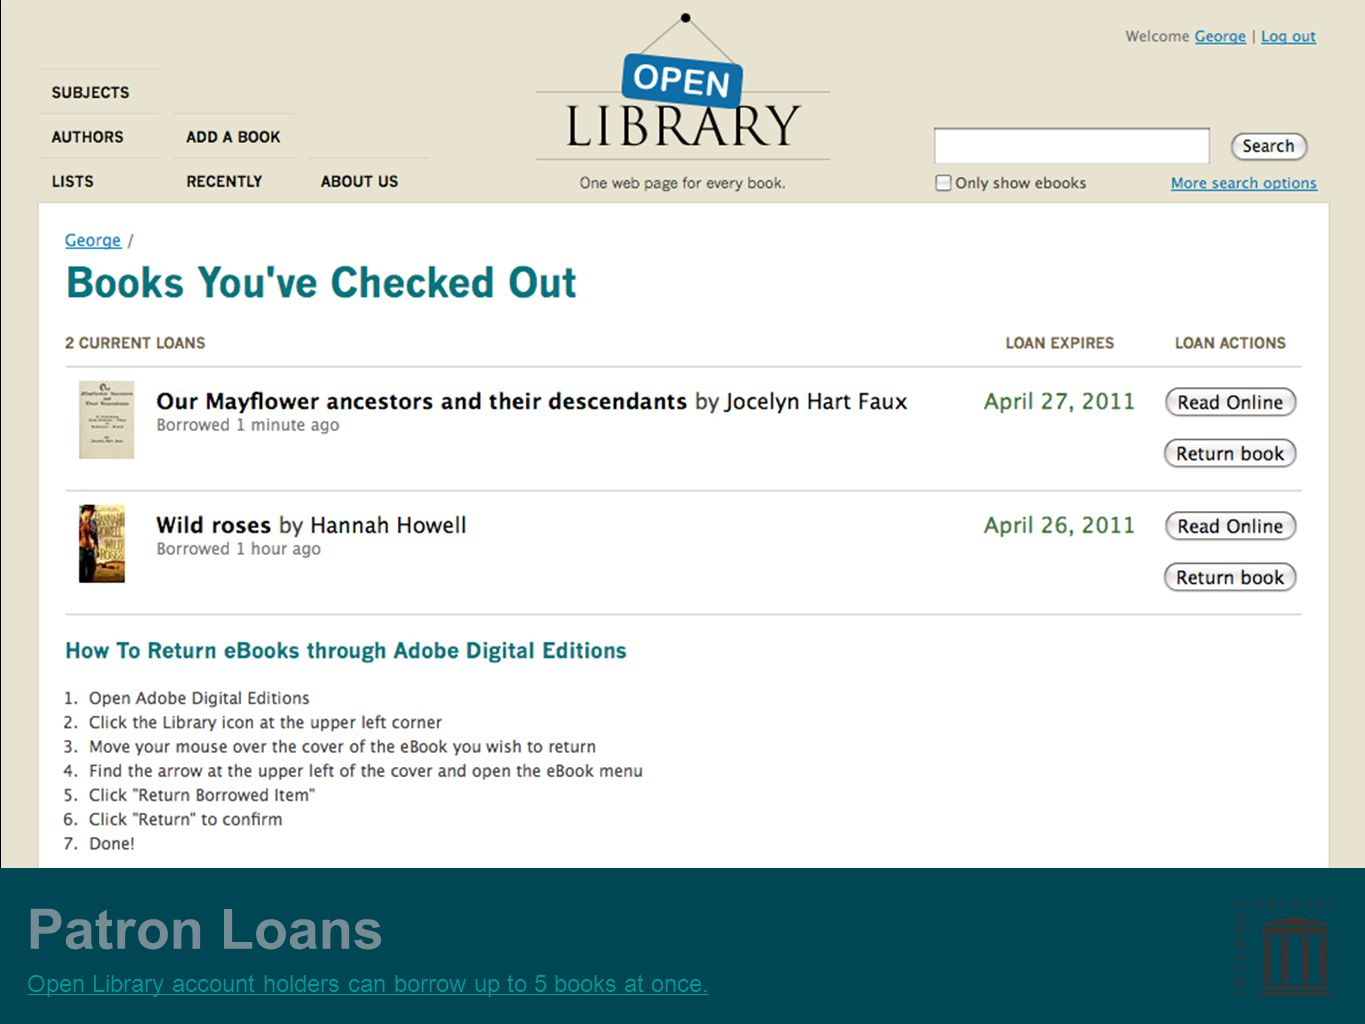 Patron Loans Open Library account holders can borrow up to 5 books at once.